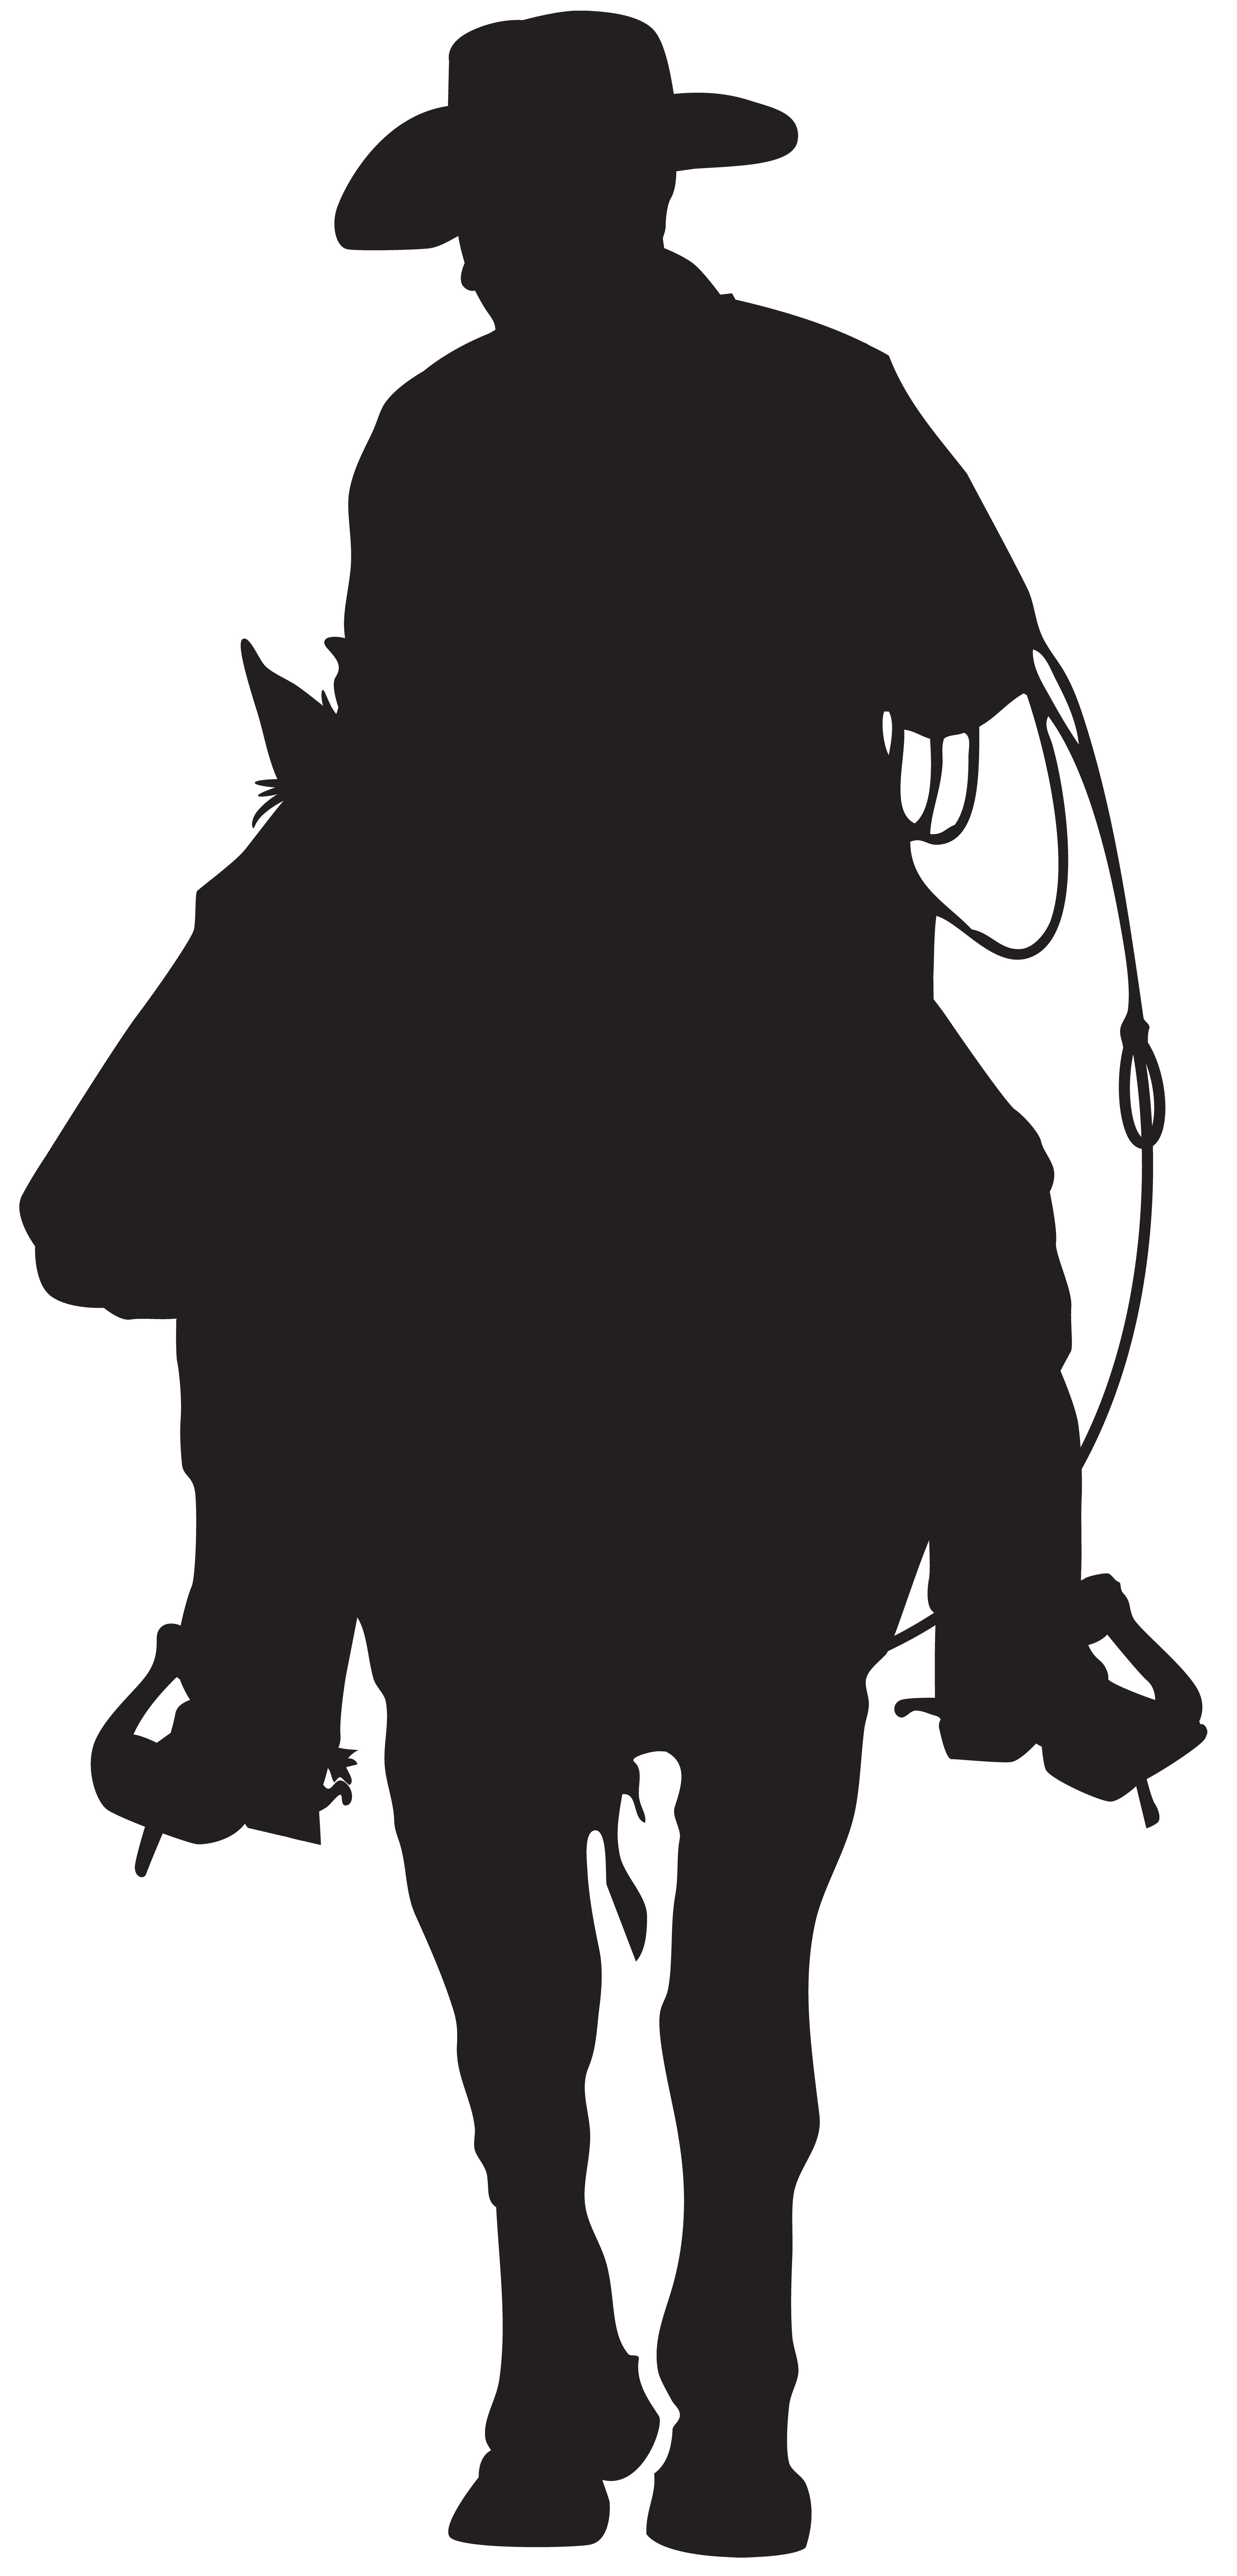 Cowboy star clipart clip art black and white stock Cowboy Silhouette PNG Clip Art Image | Gallery Yopriceville - High ... clip art black and white stock